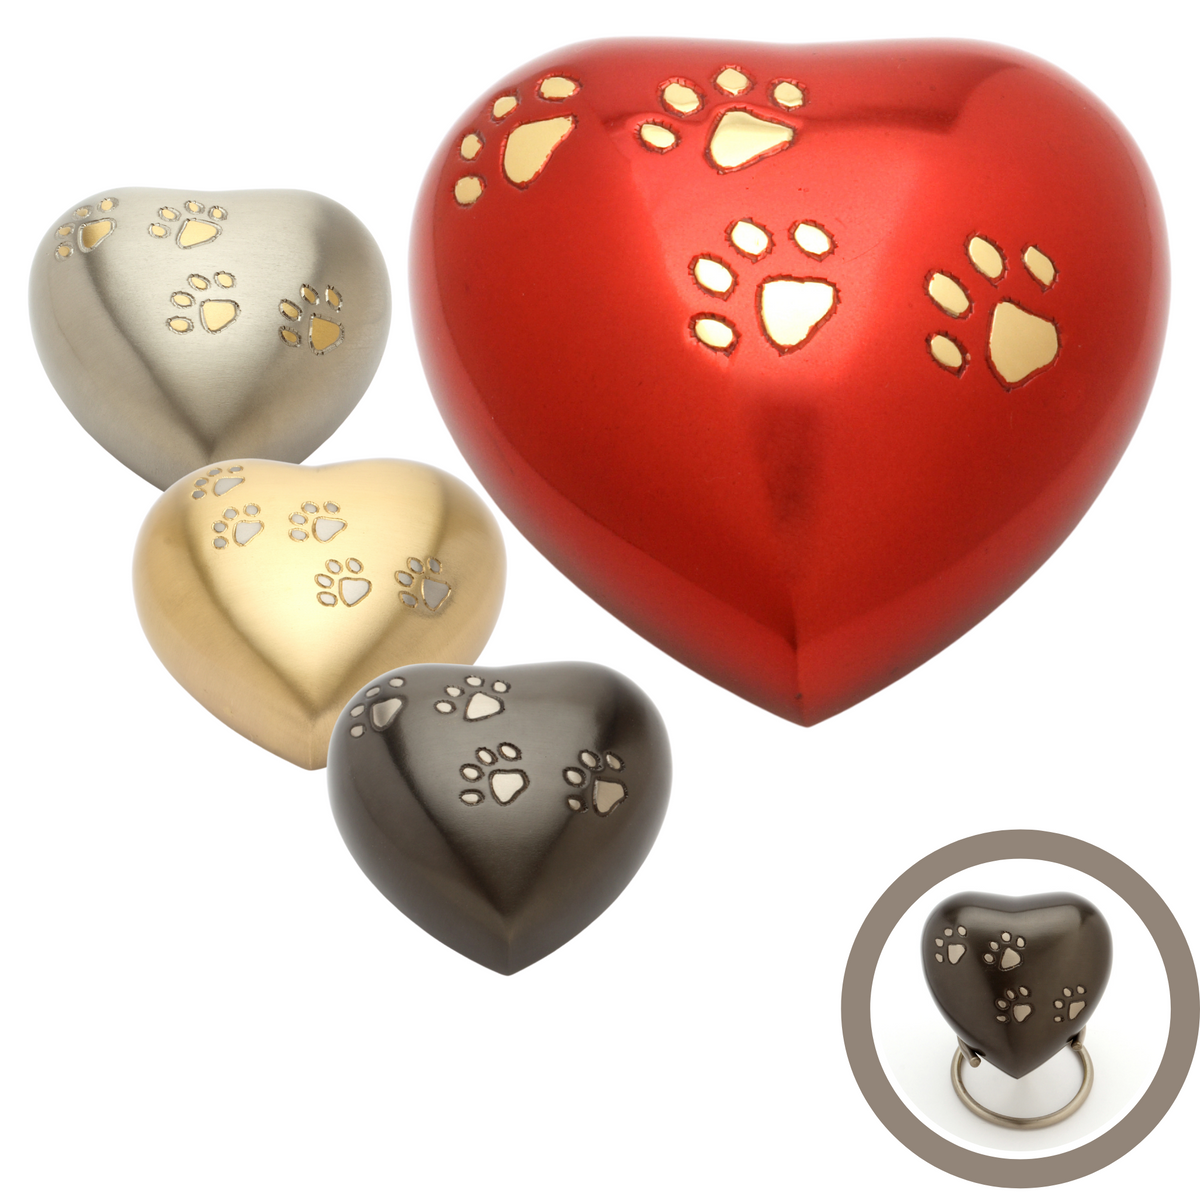 Hertford Heart Cremation Ashes Keepsake Urn Range - Urns UK